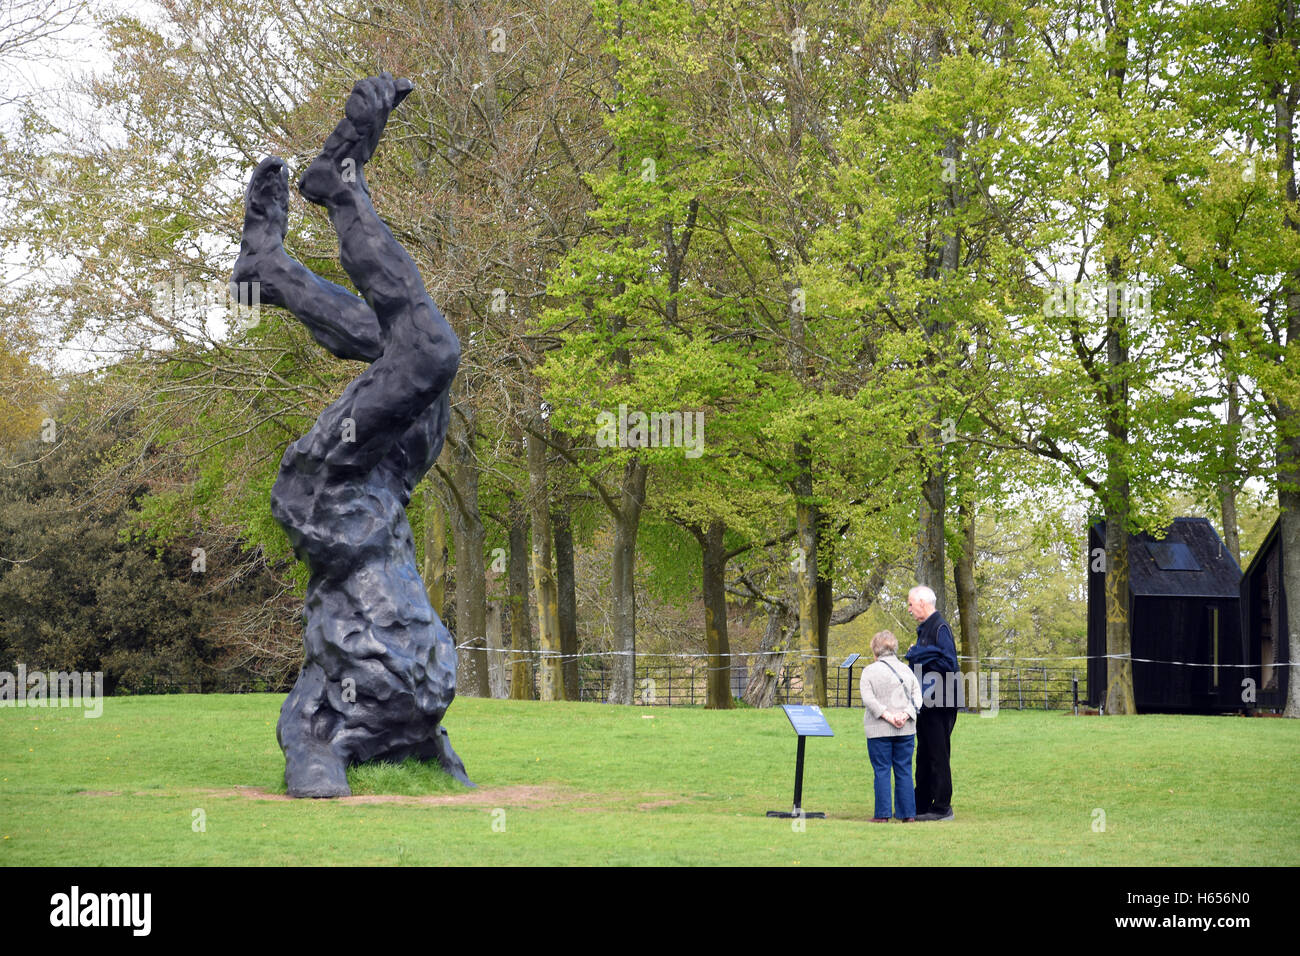 Visitors viewing Scupture by David Breuer-Weil's in Mottisfont gardens - Stock Image